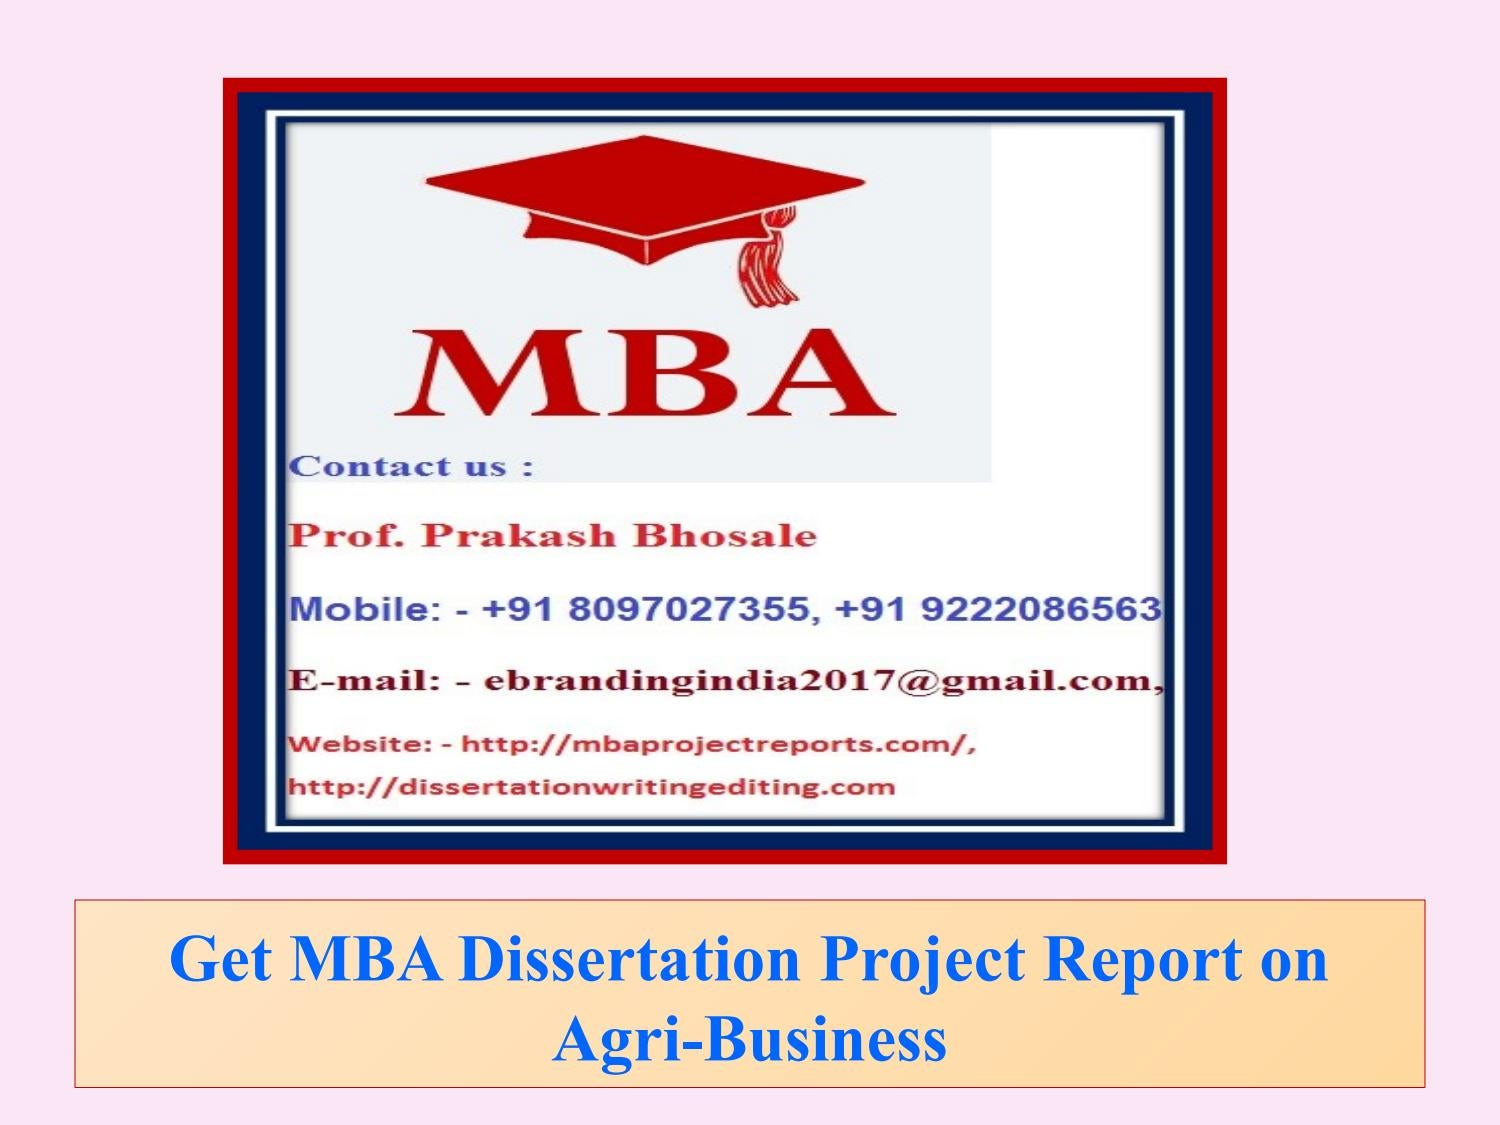 Dissertation project report for mba systems